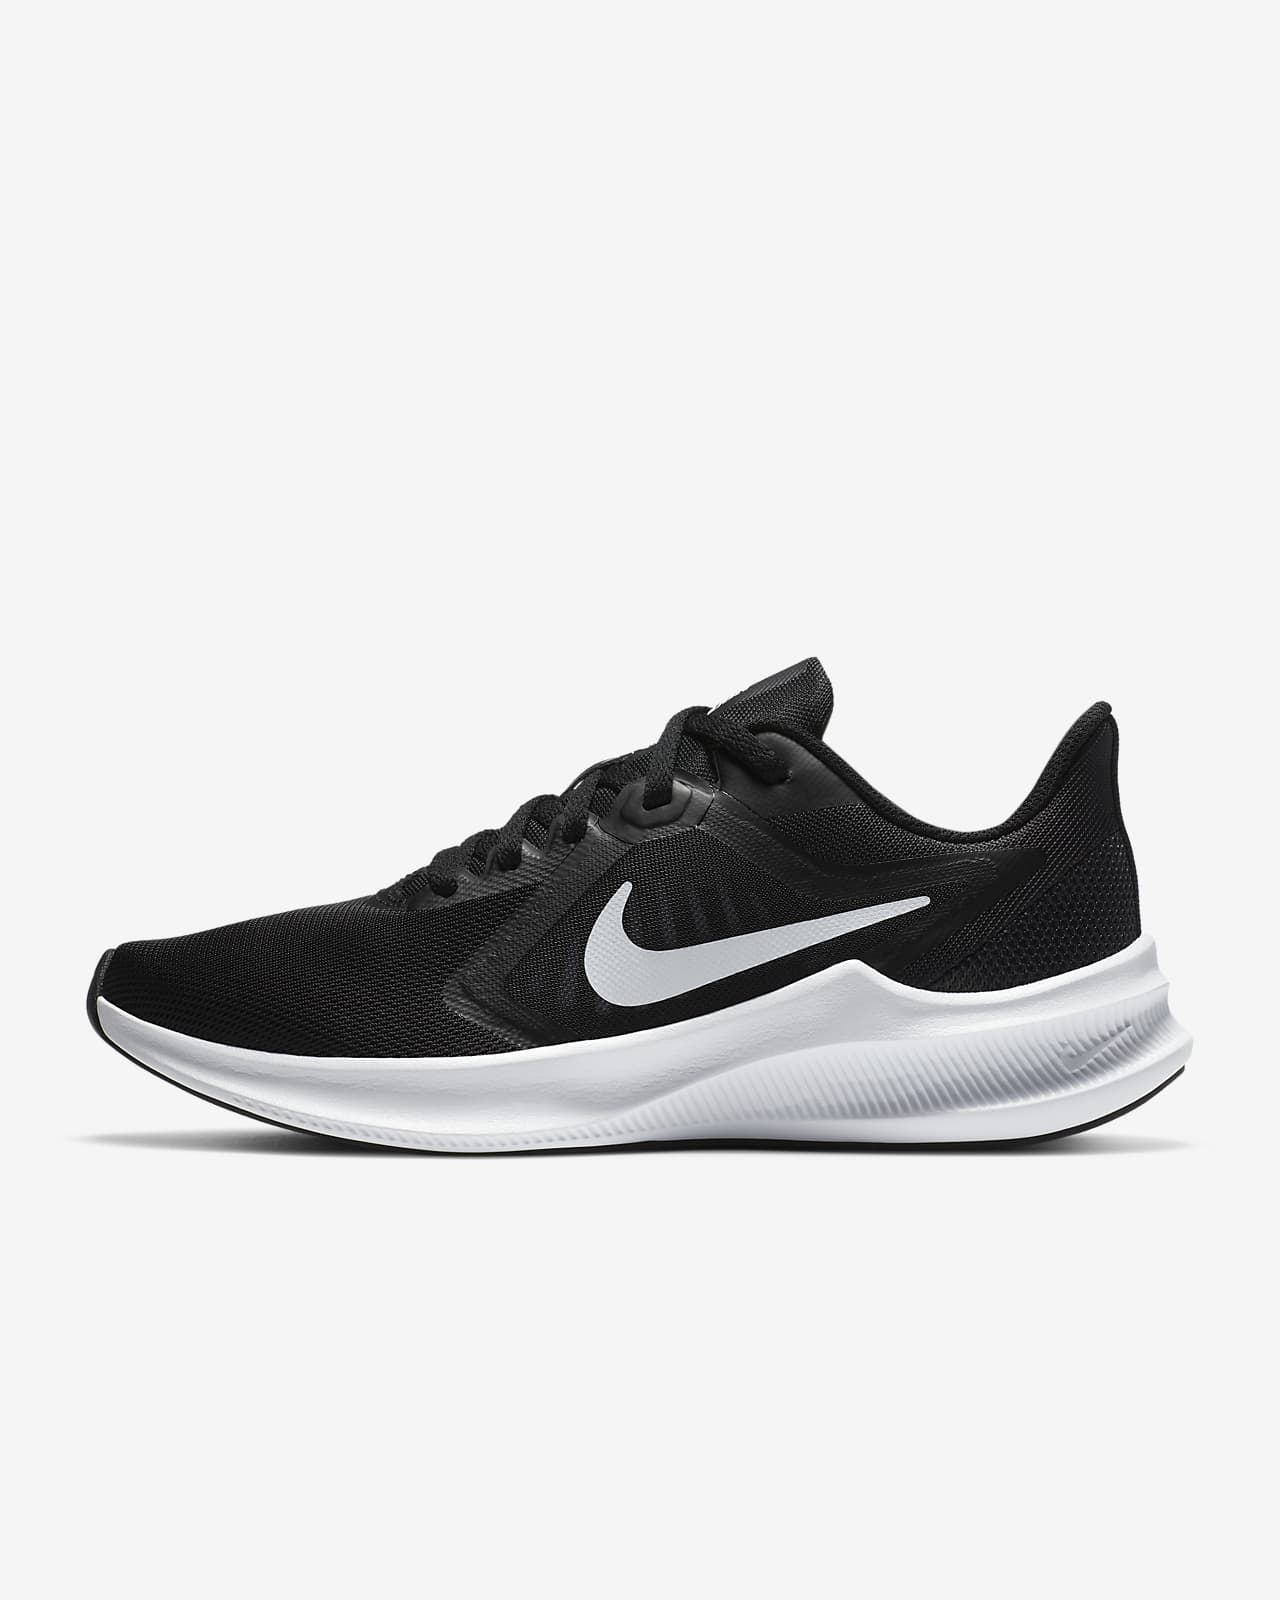 Nike Downshifter 10 Women's Running Shoe